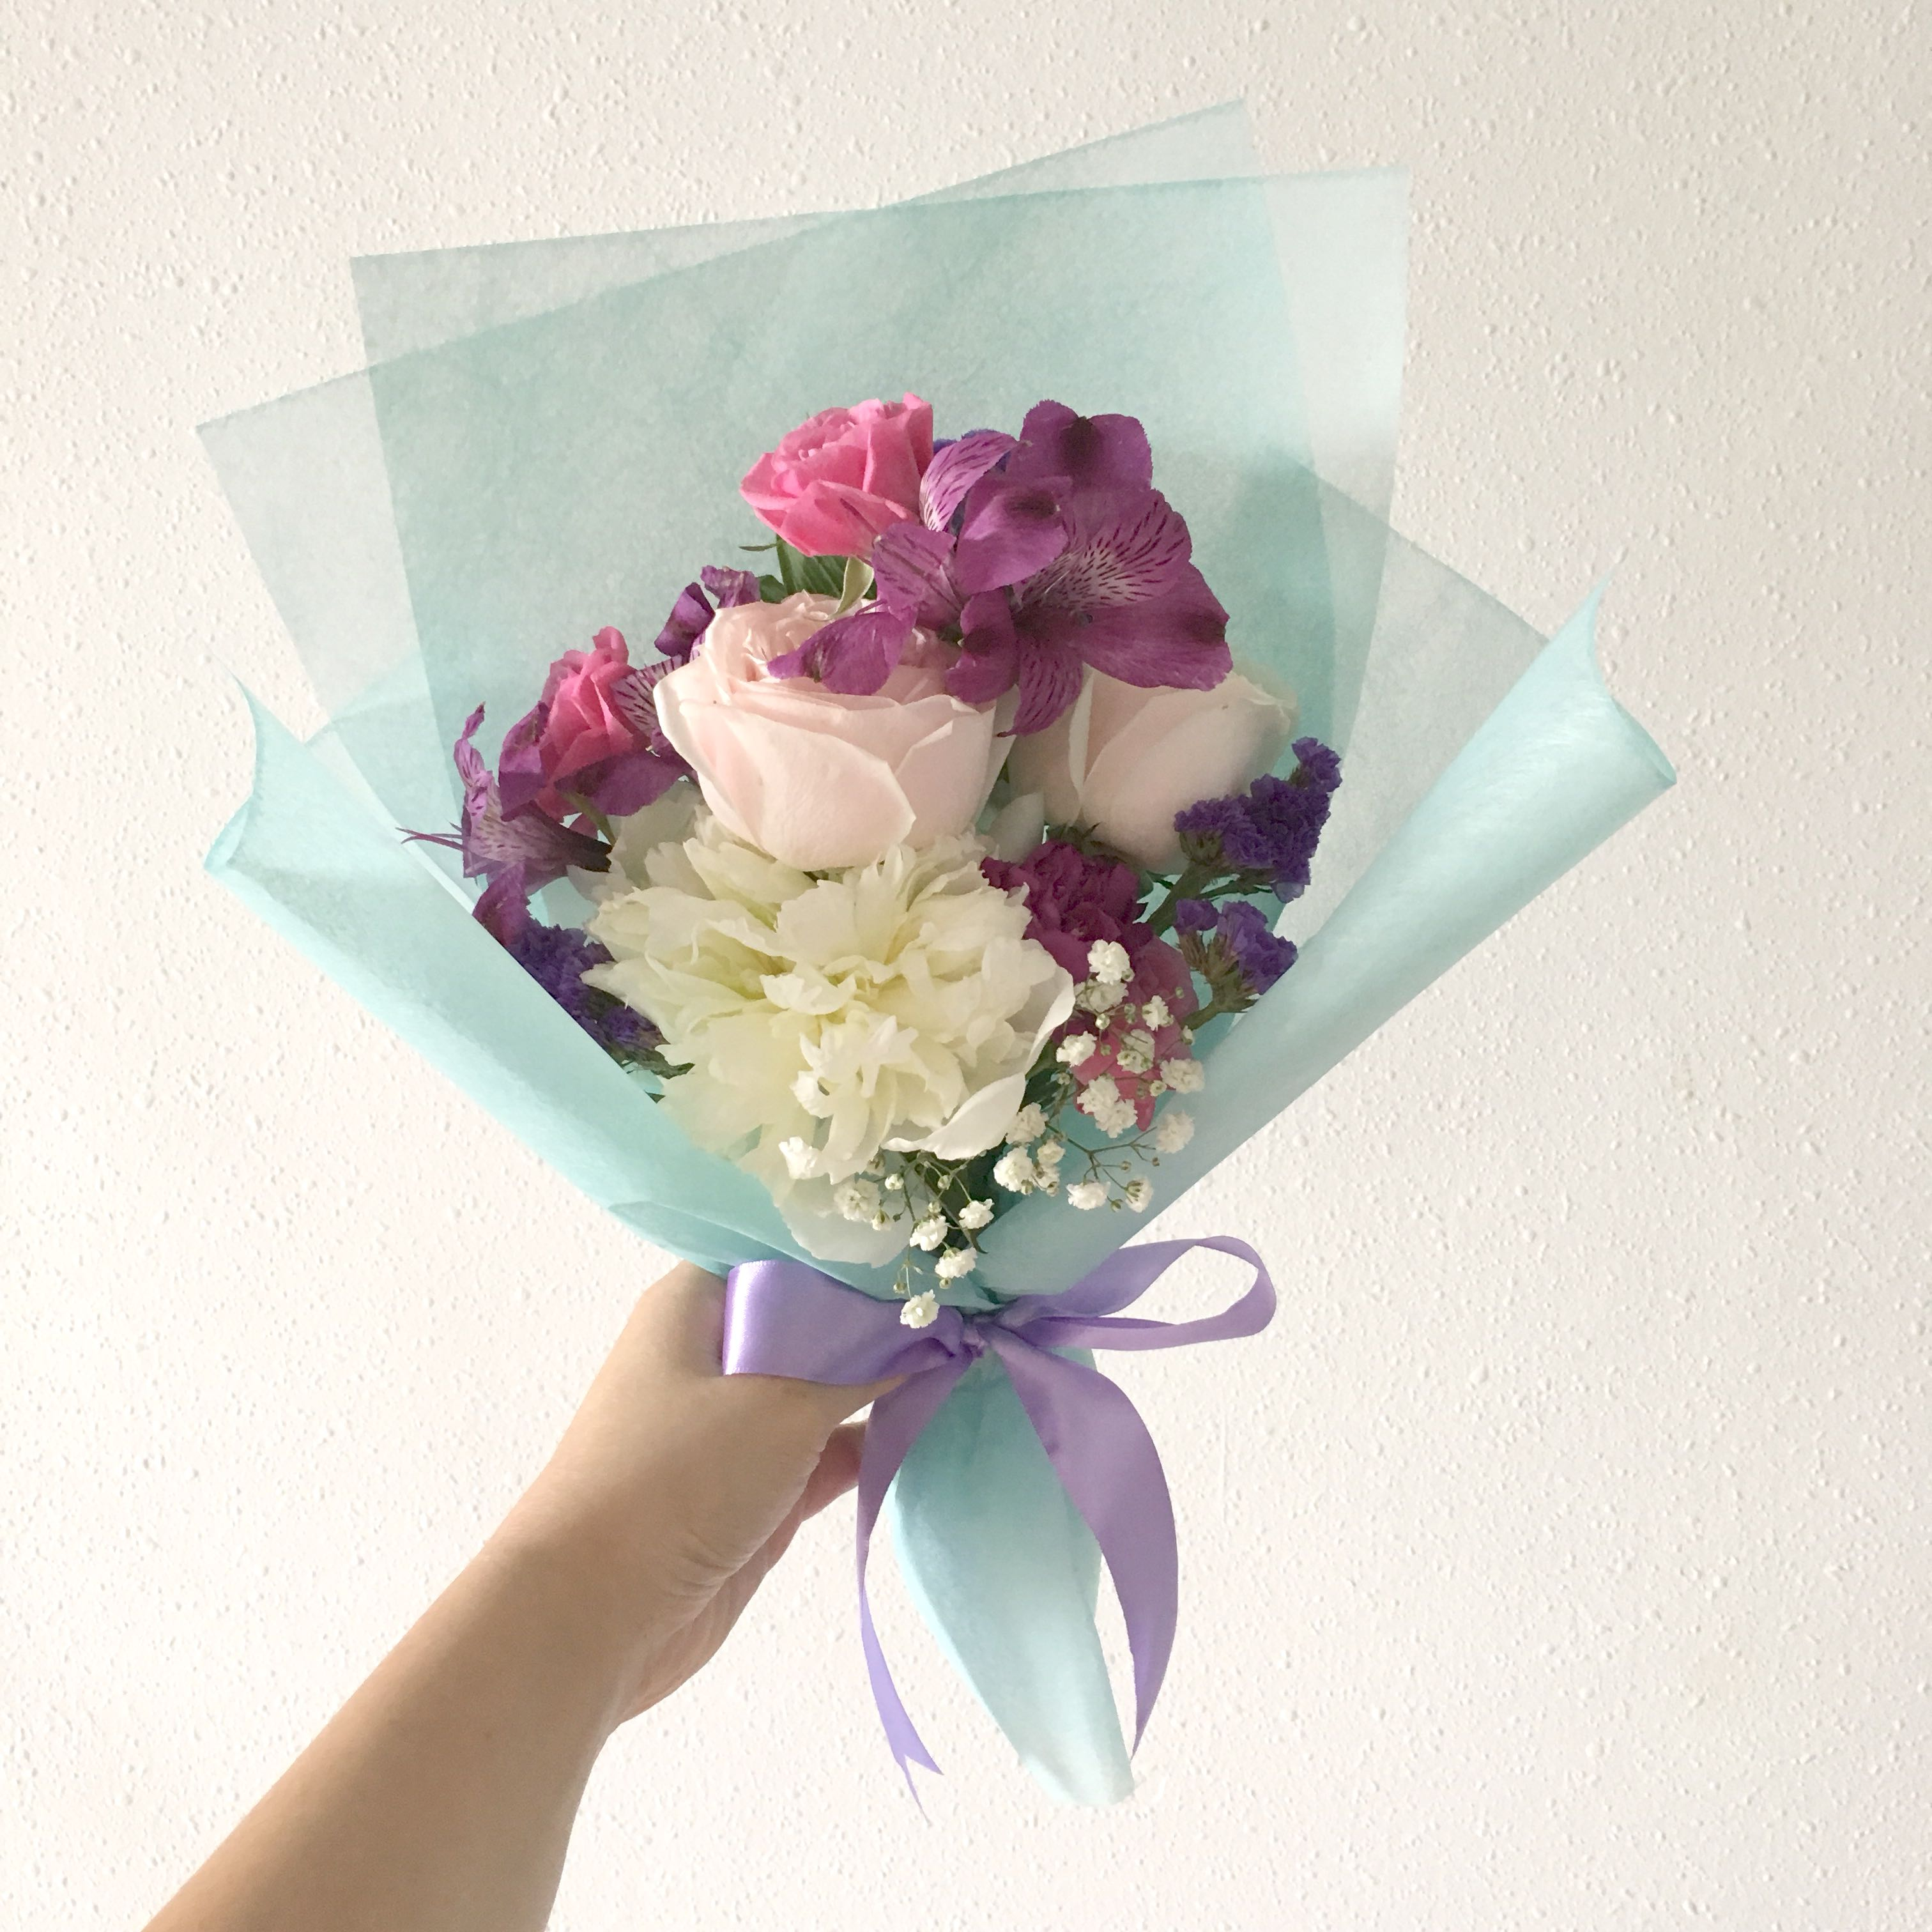 Fresh flower bouquet mix flowers, Gardening, Flowers & Bouquets on ...